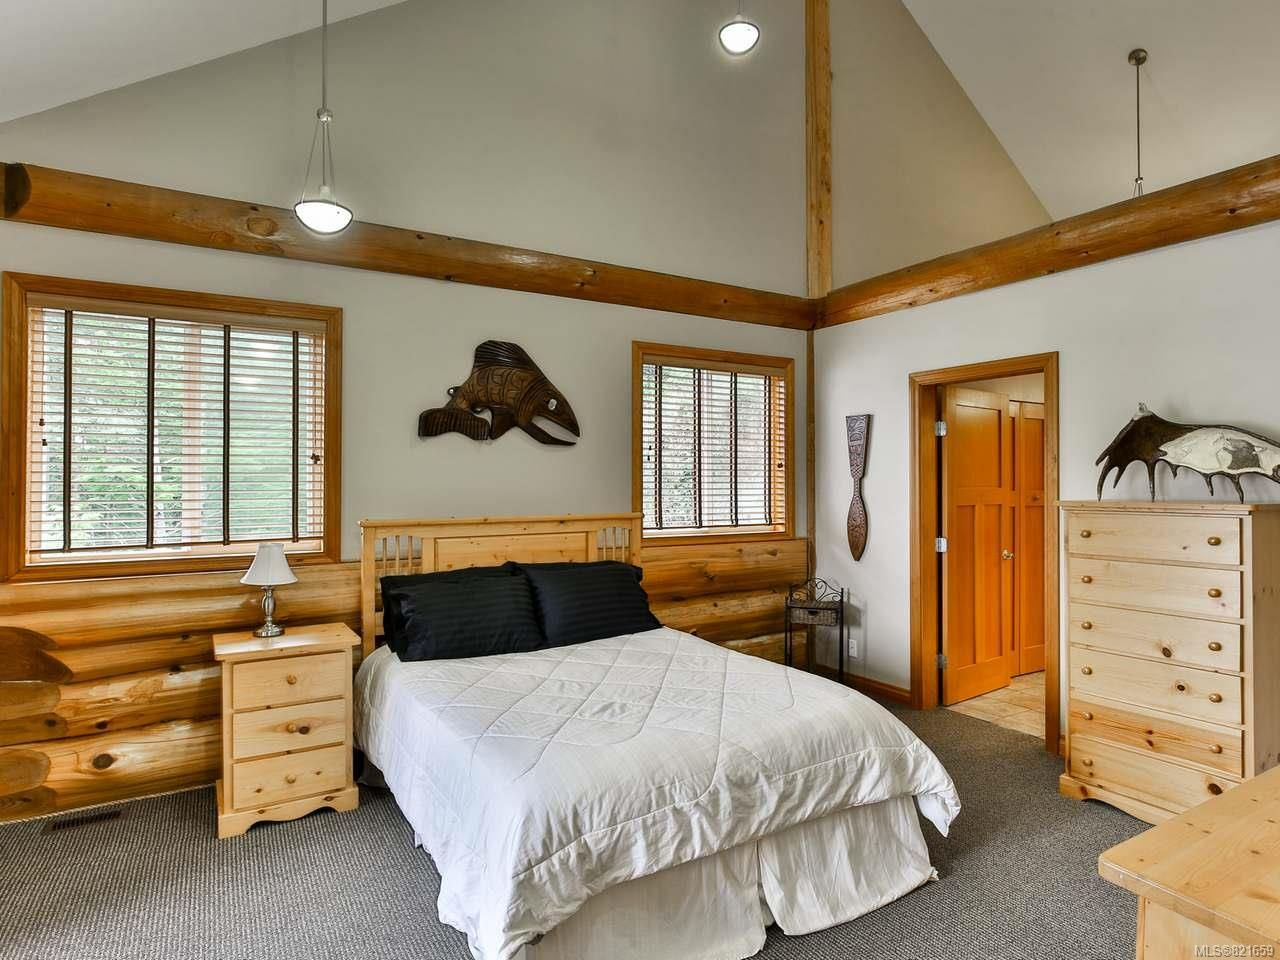 Photo 20: Photos: 1049 Helen Rd in UCLUELET: PA Ucluelet House for sale (Port Alberni)  : MLS®# 821659